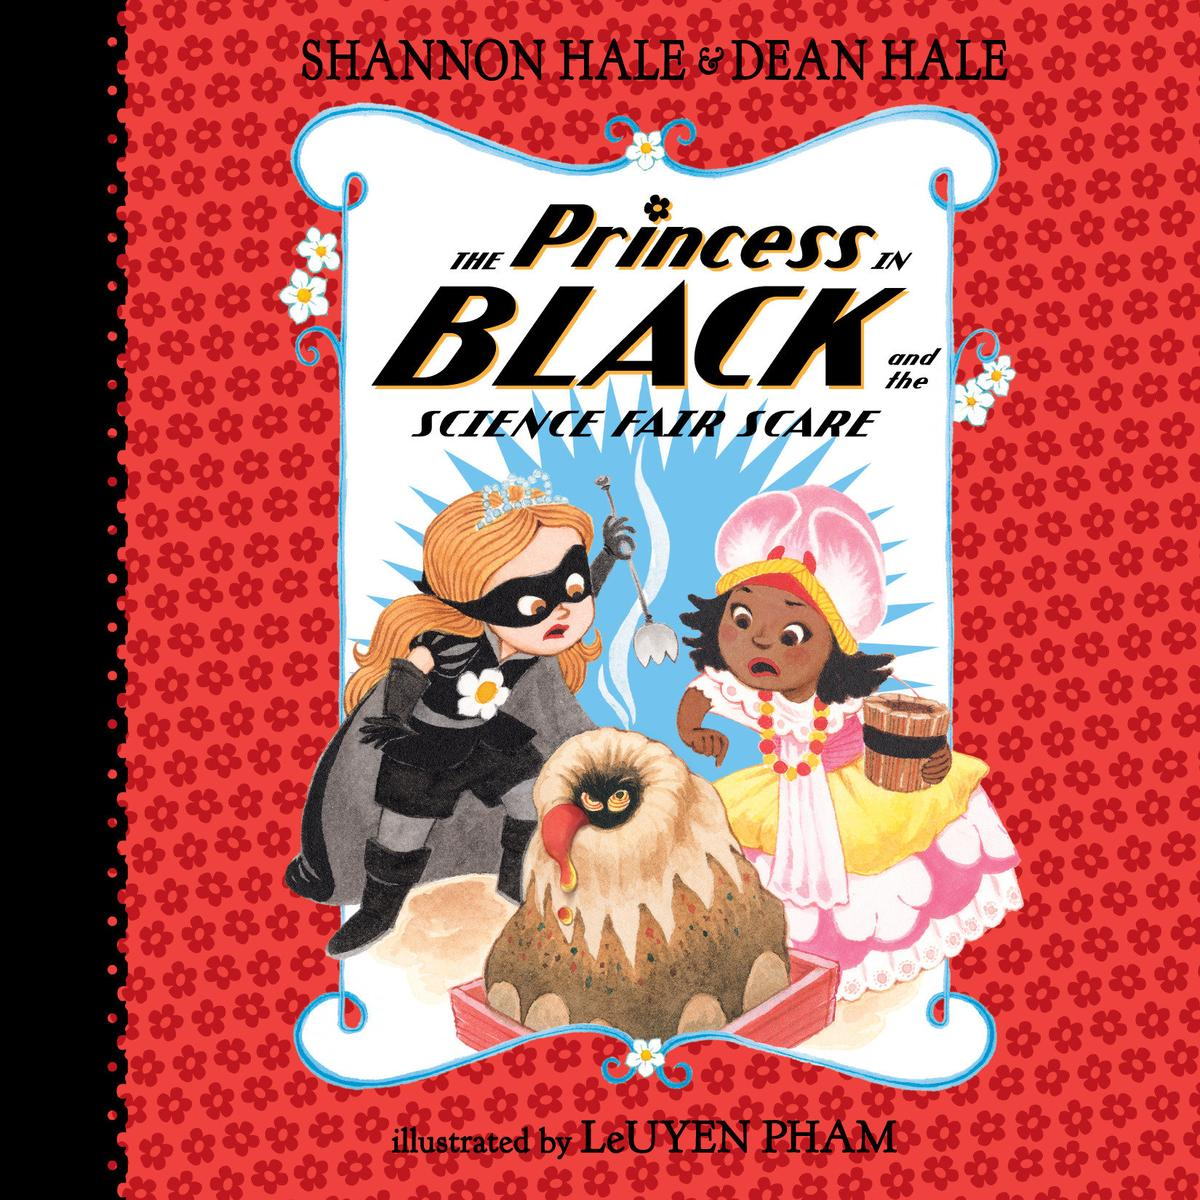 The Princess in Black and the Science Fair Scare - Audiobook